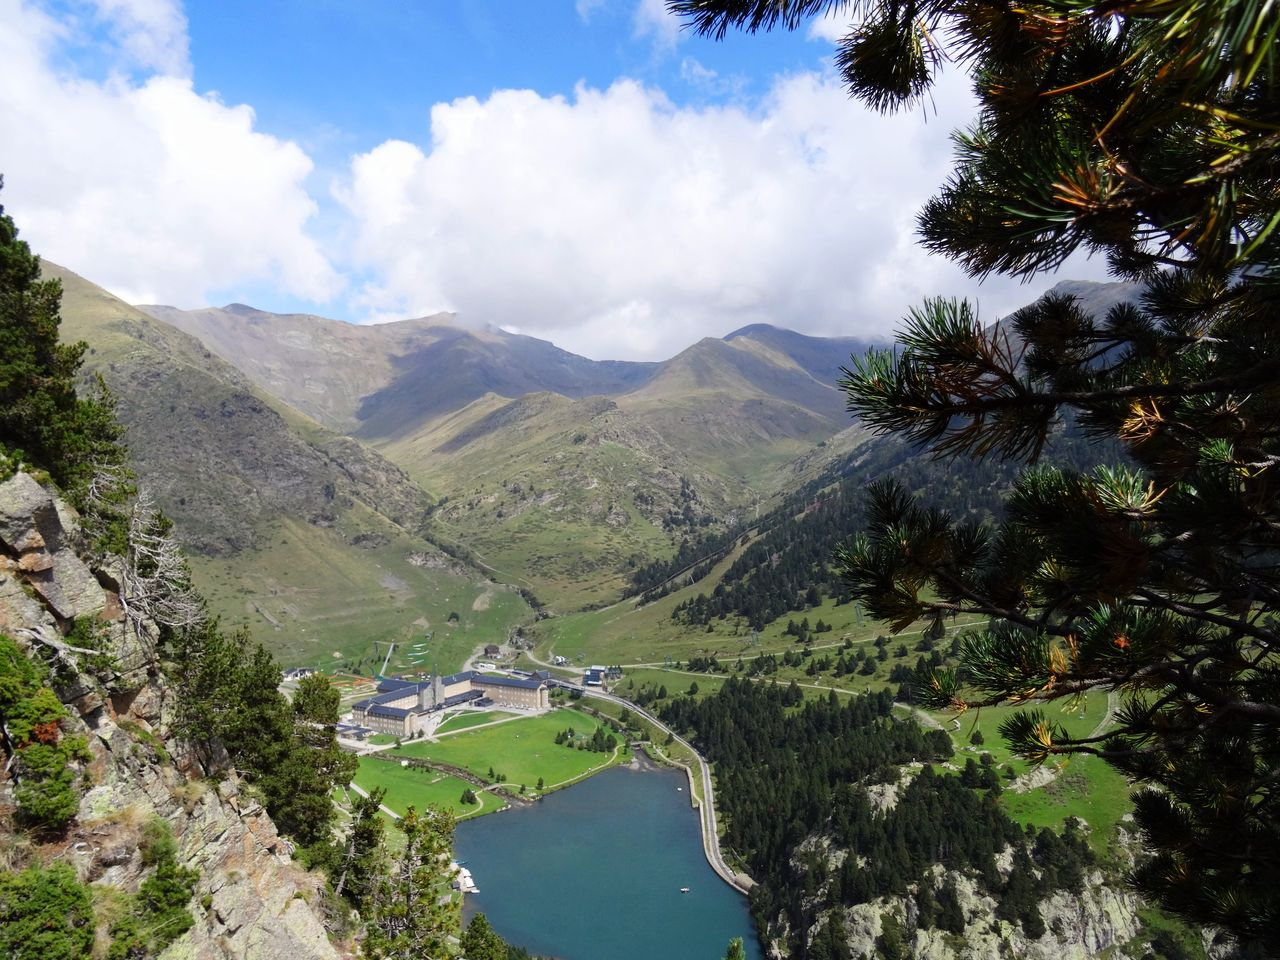 This is a wonderful chance to step foot in the spectacular Pyrenees mountains and take the mountain train up to nearly 2,000 metres (6,000 feet).